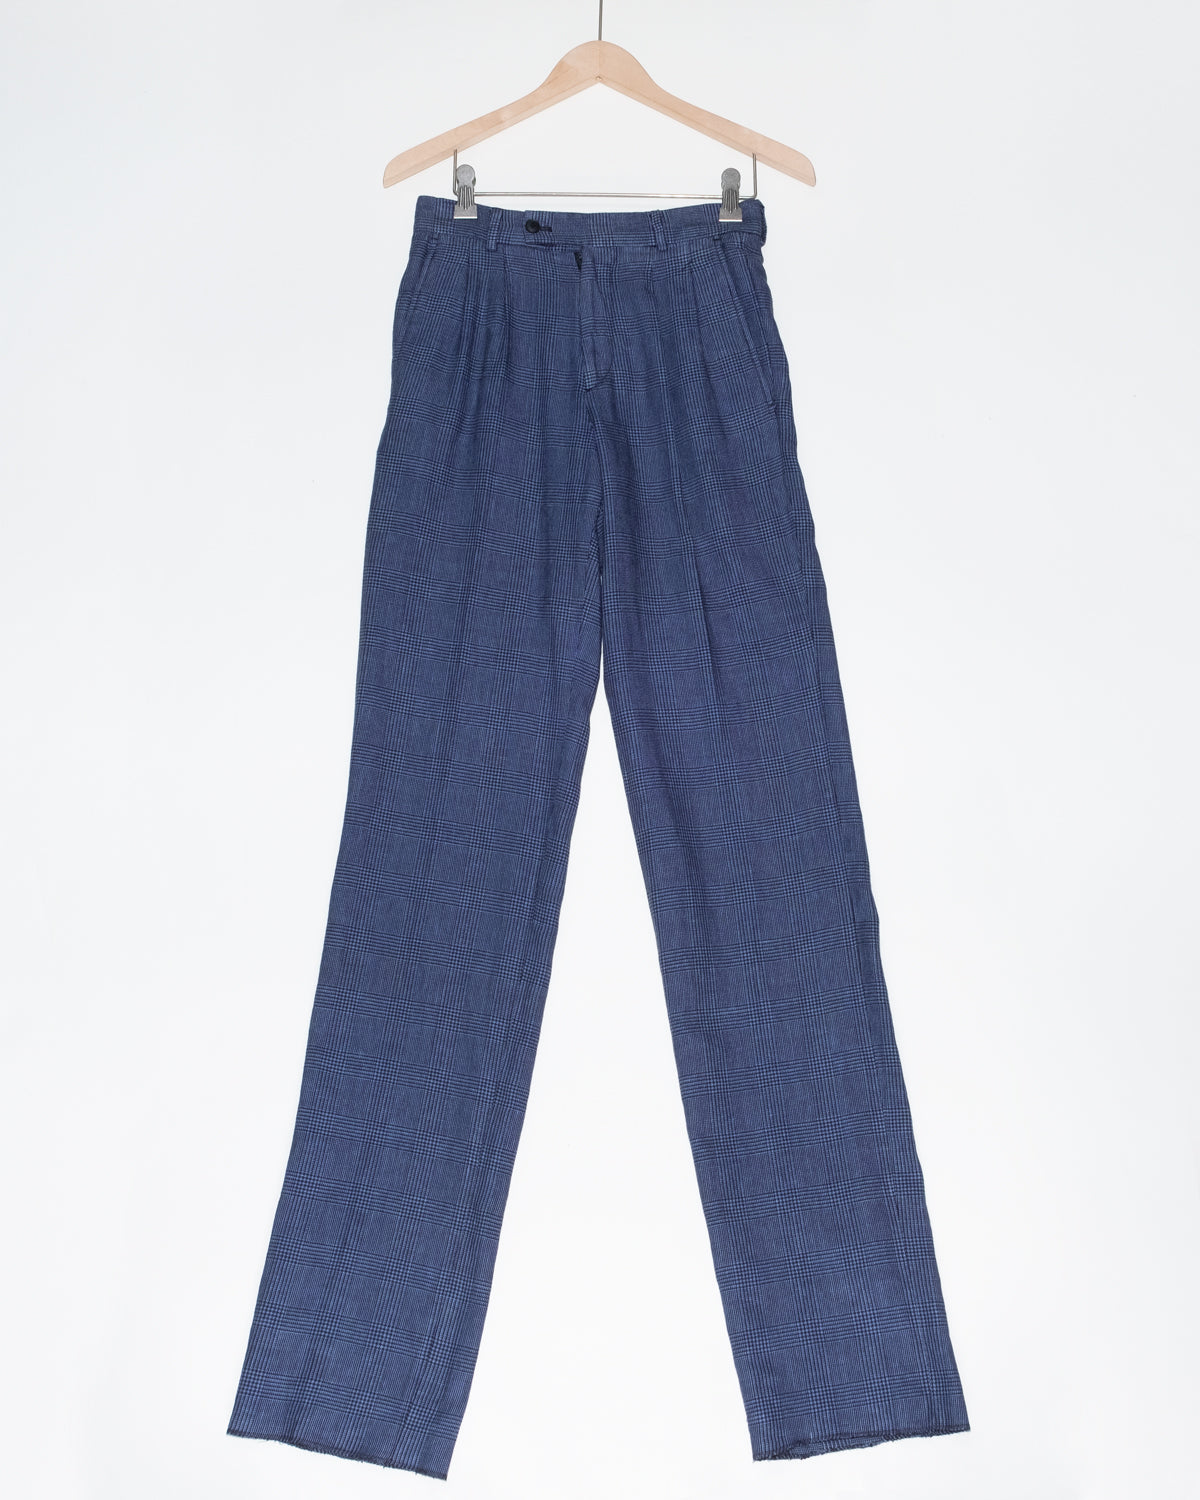 The Academy New York double pleat trouser in overdyed lilac (front).